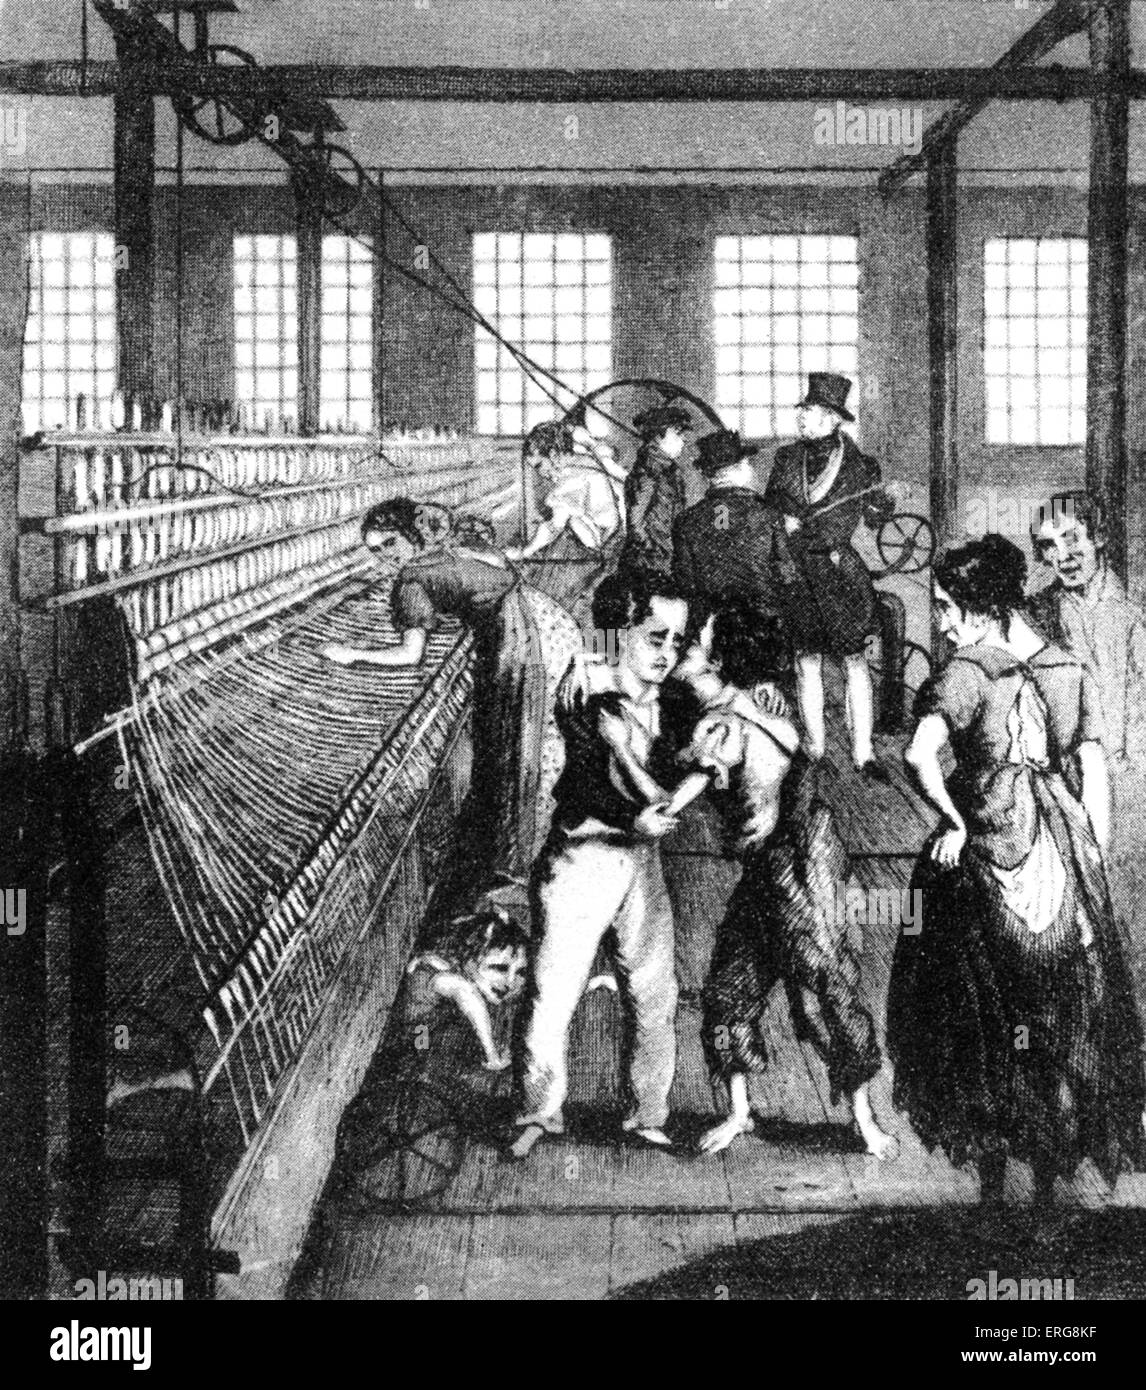 Children At Work In A Factory 1840 Stock Photo 83336611